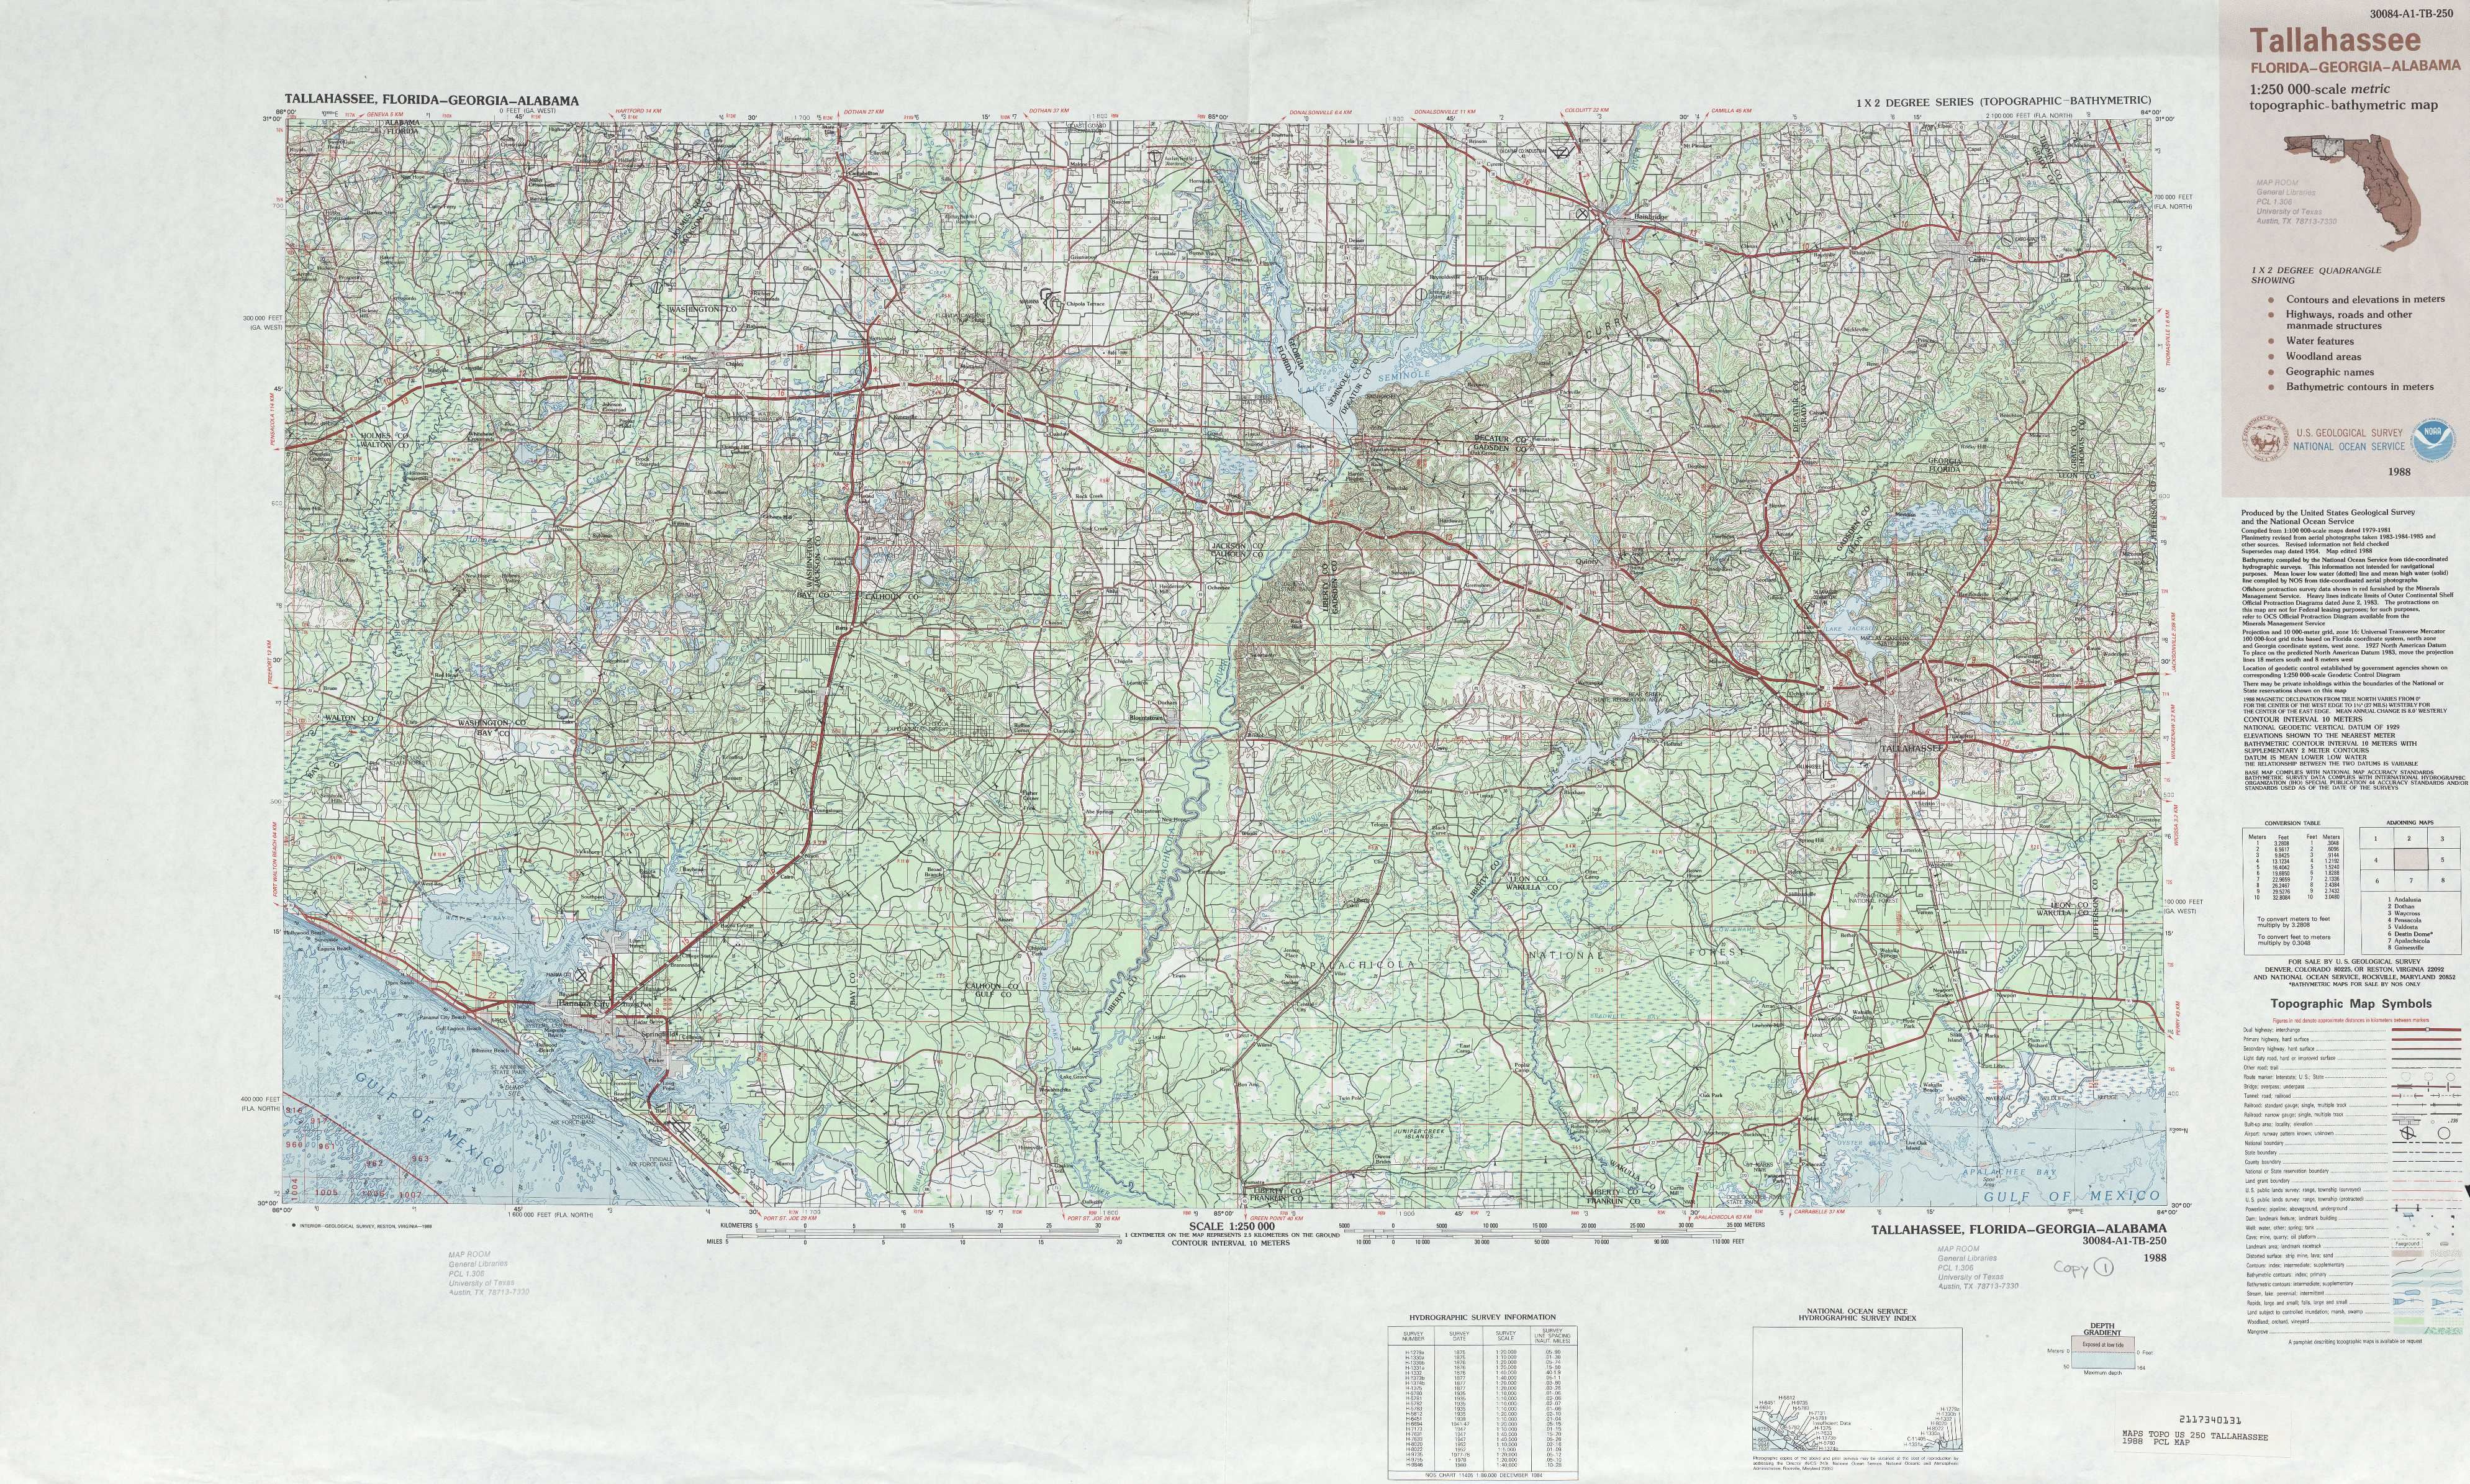 Tallahassee topographic maps FL GA USGS Topo Quad 30084a1 at 1